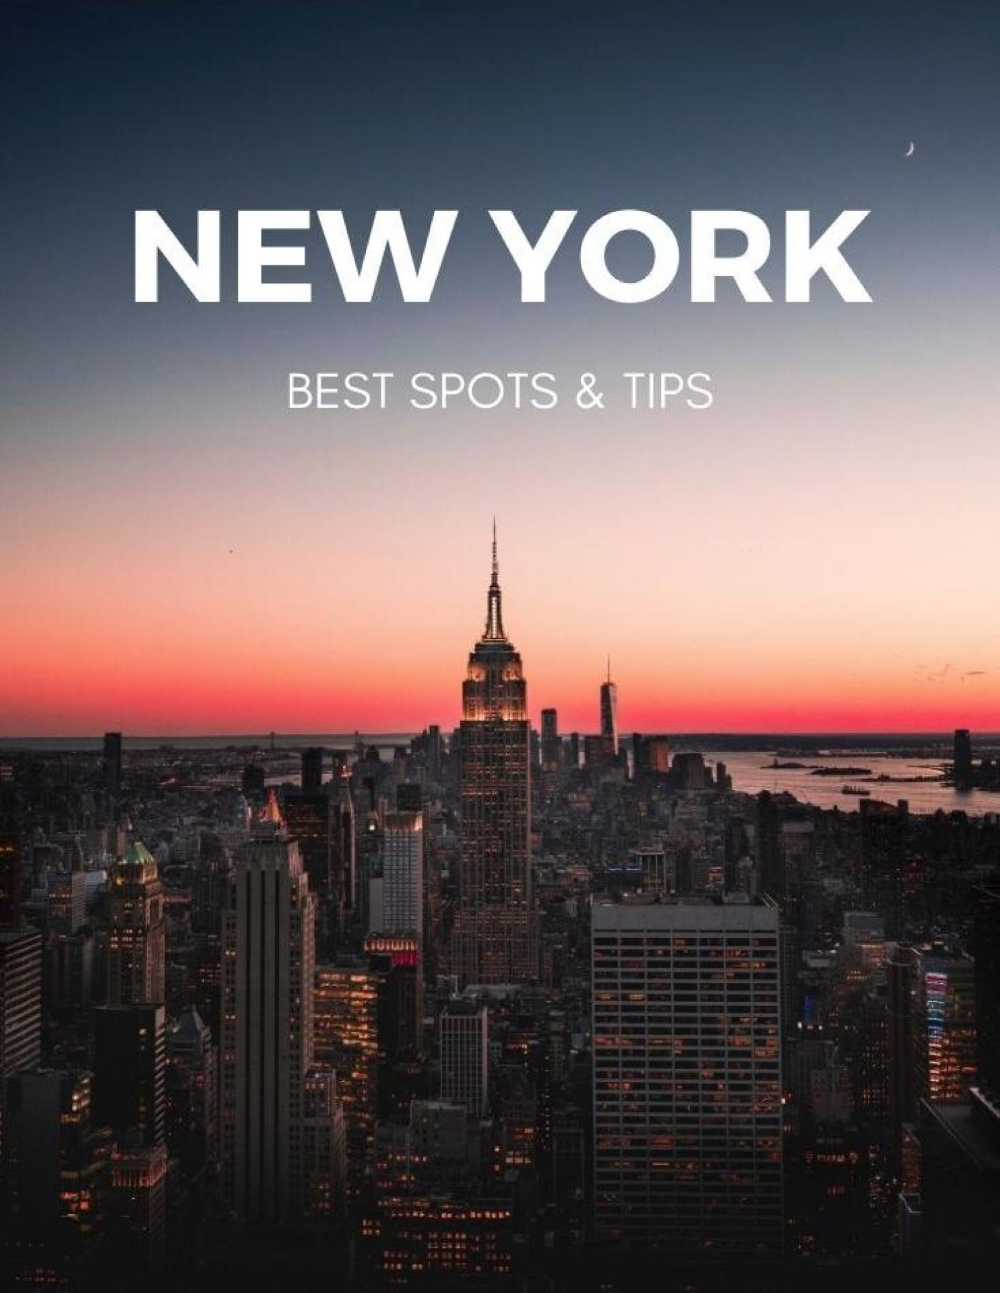 Best spots in New York, directions and maps to reach them without too much trouble and some practical tips learned from practical experience that you might find handy. #newyork #usa #manhattan #centralpark #instgramablespots #brooklynbridge #rockefellercenter #flatironbuilding #dumbo #thevessel #timessquare #theoculus #worldtradecenter